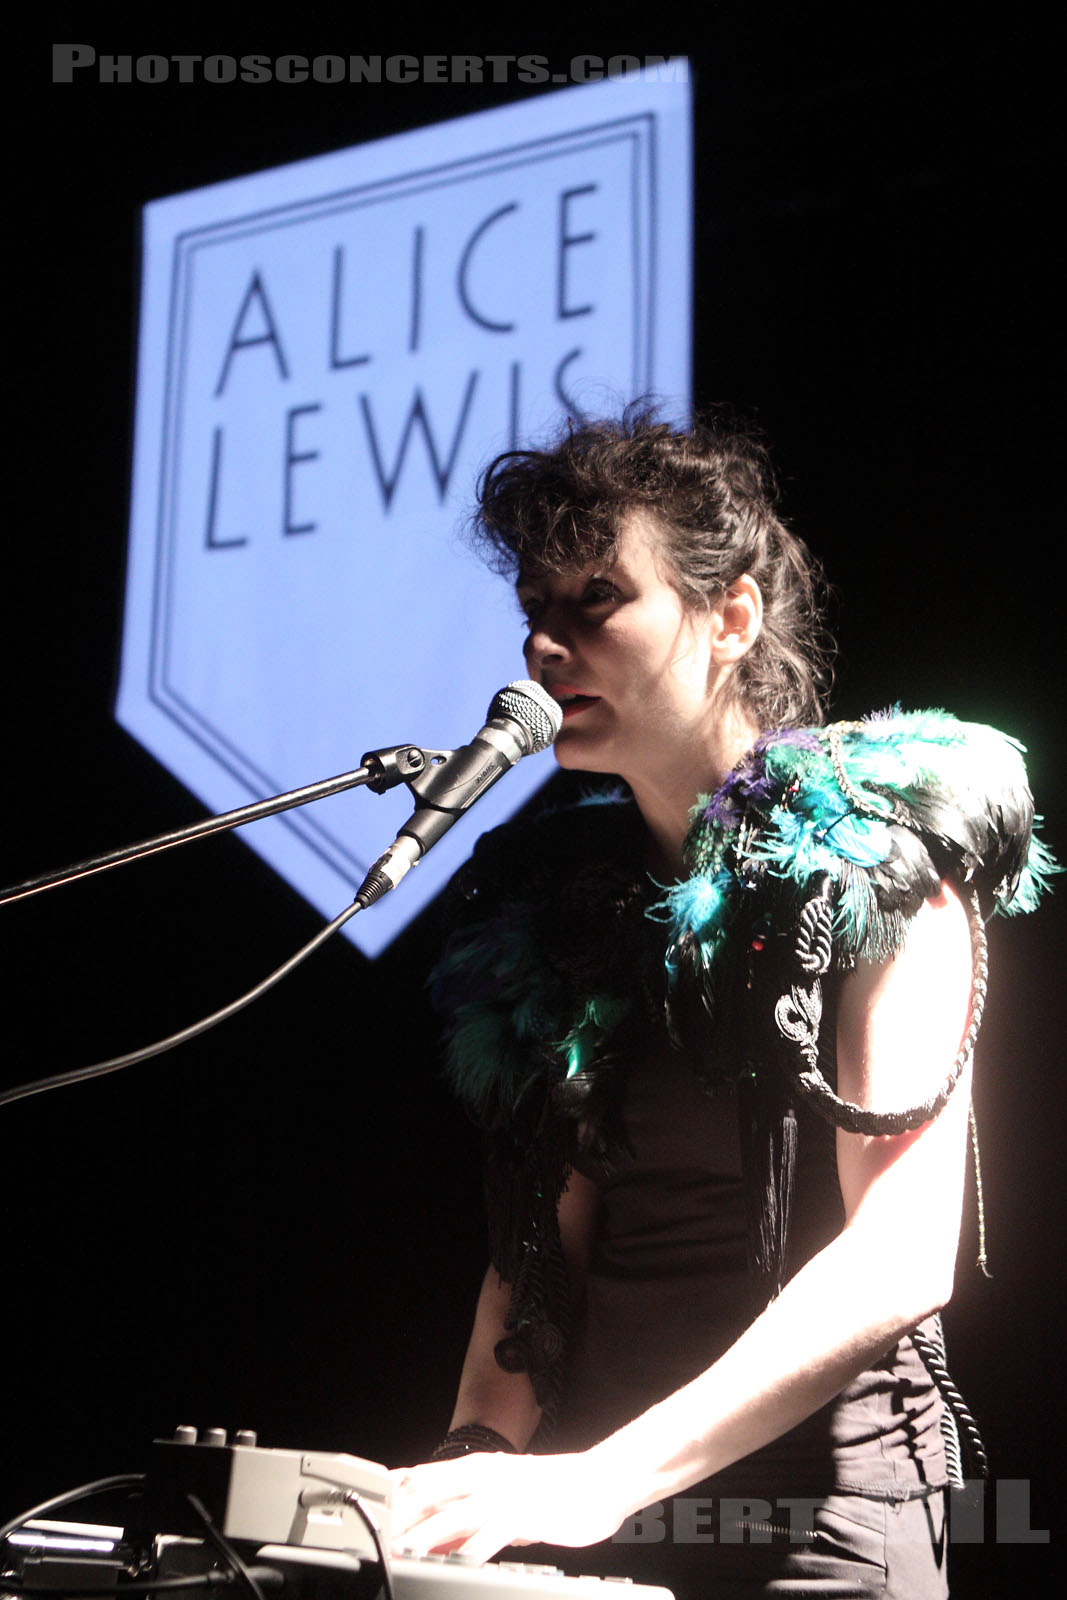 ALICE LEWIS - 2011-01-21 - PARIS - La Loge